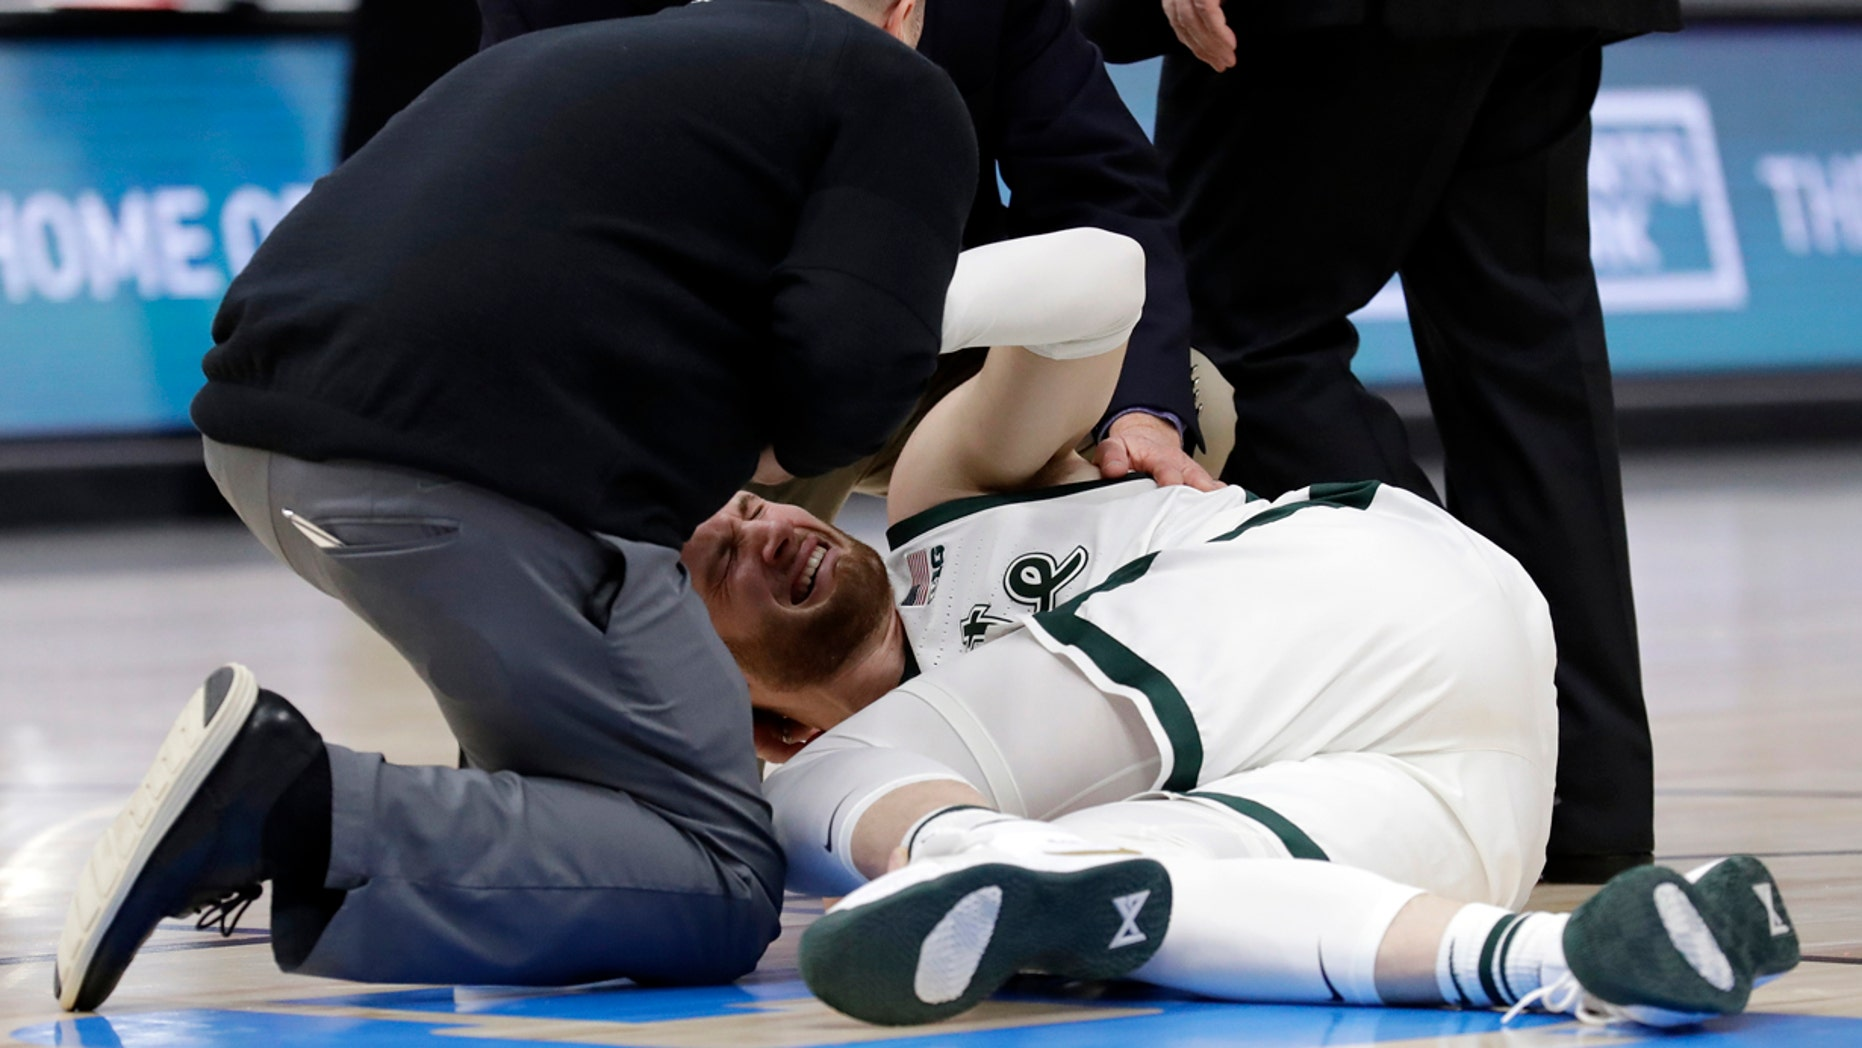 March 17: Medical personnel checks on Michigan State's Kyle Ahrens during the first half of an NCAA college basketball championship game against Michigan in the Big Ten Conference tournament.